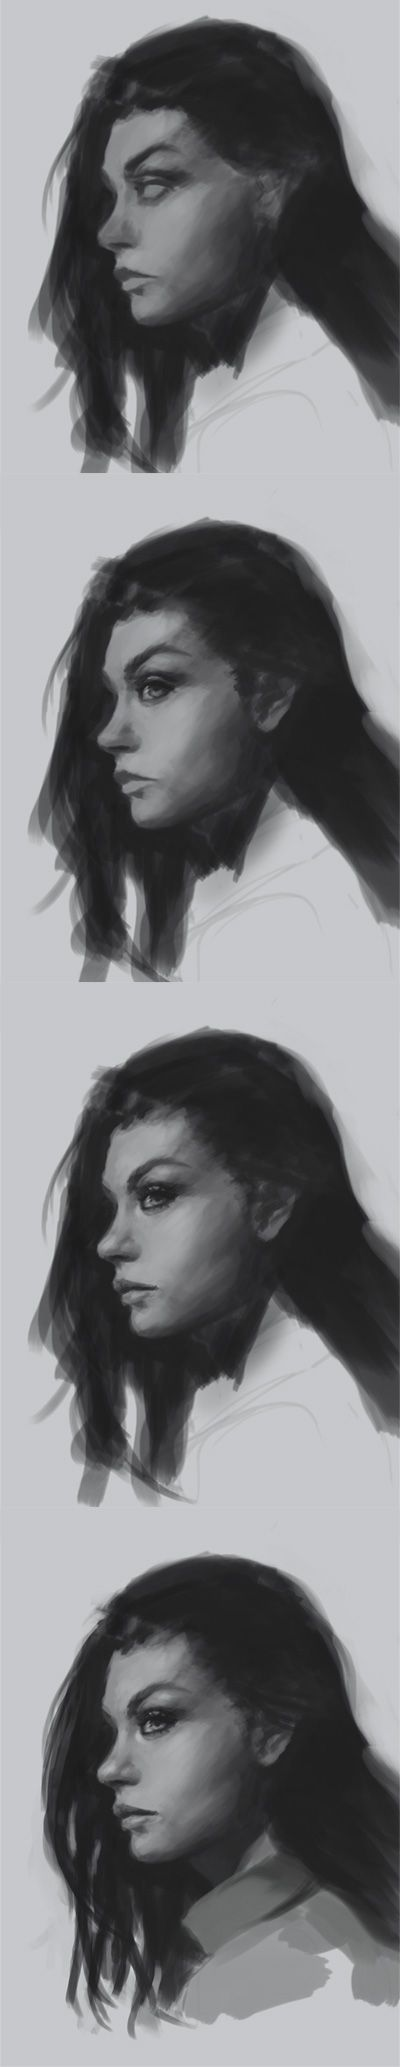 How to draw face side view | drawing and digital painting tutorials online